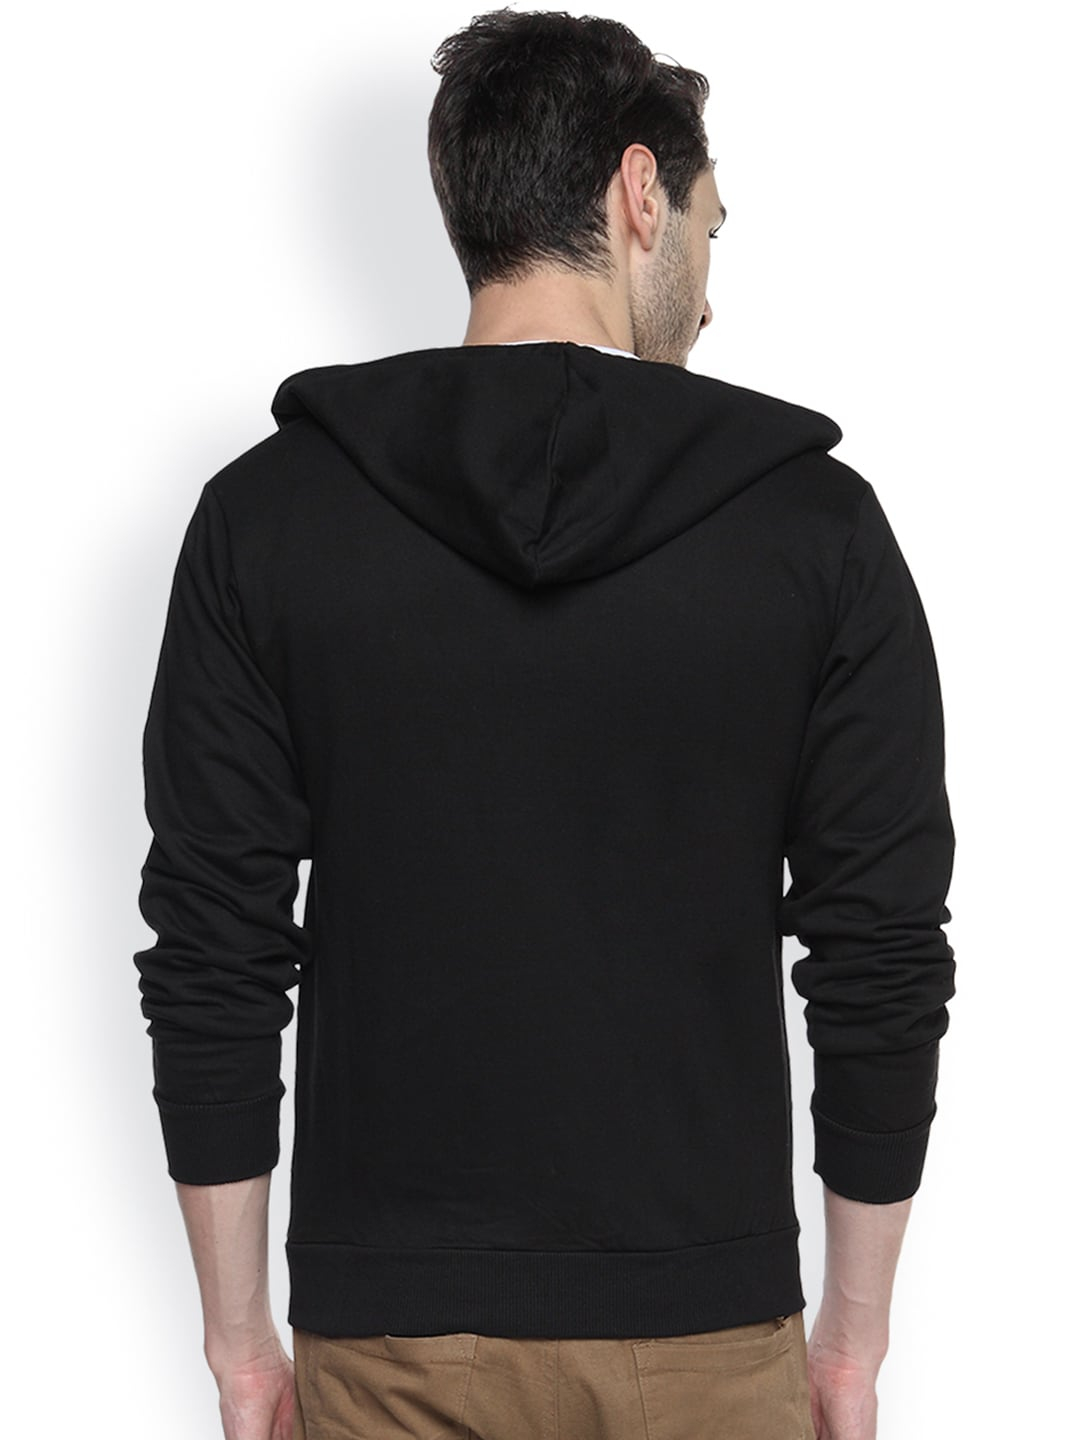 Campus Sutra Sweatshirts - Buy Campus Sutra Sweatshirt Online